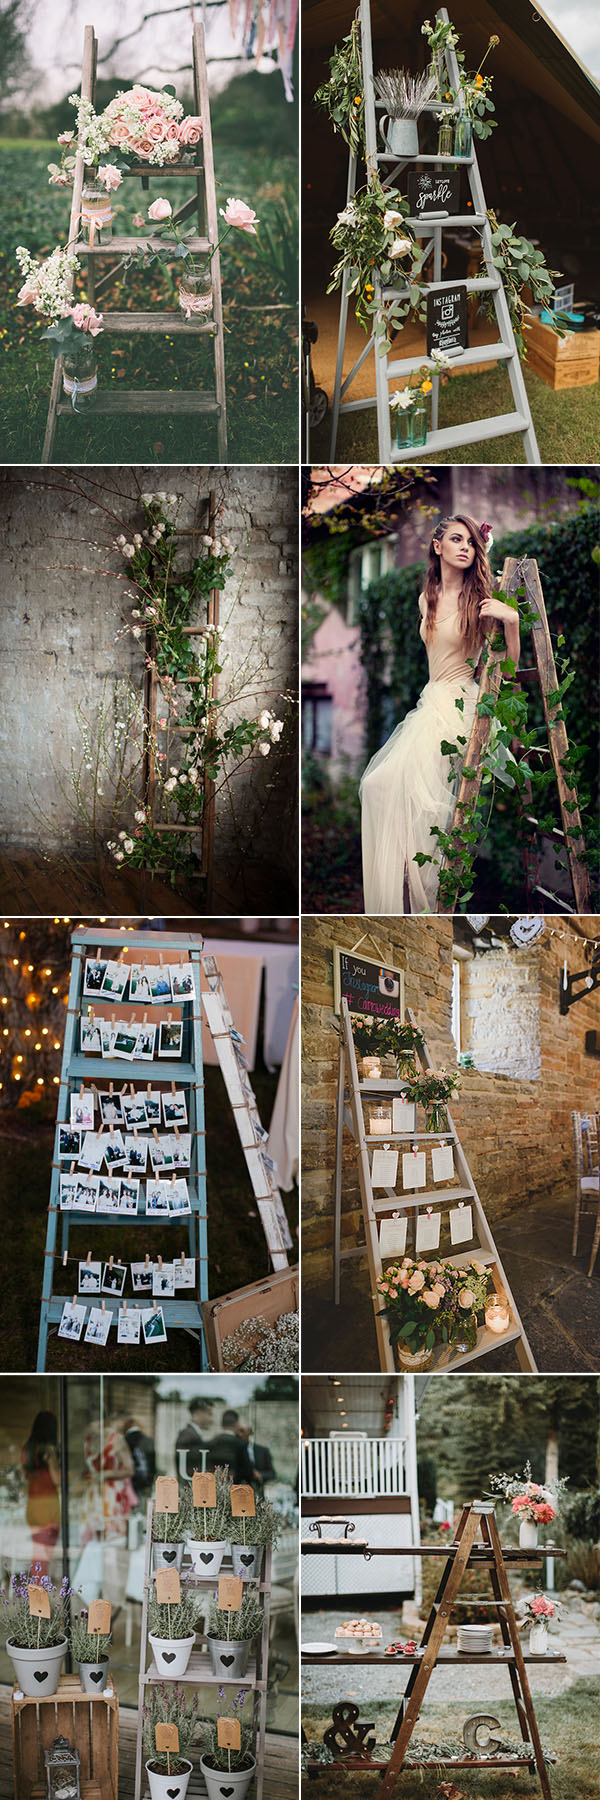 Creative Shabby Chic Ladder Wedding Decoration Ideas